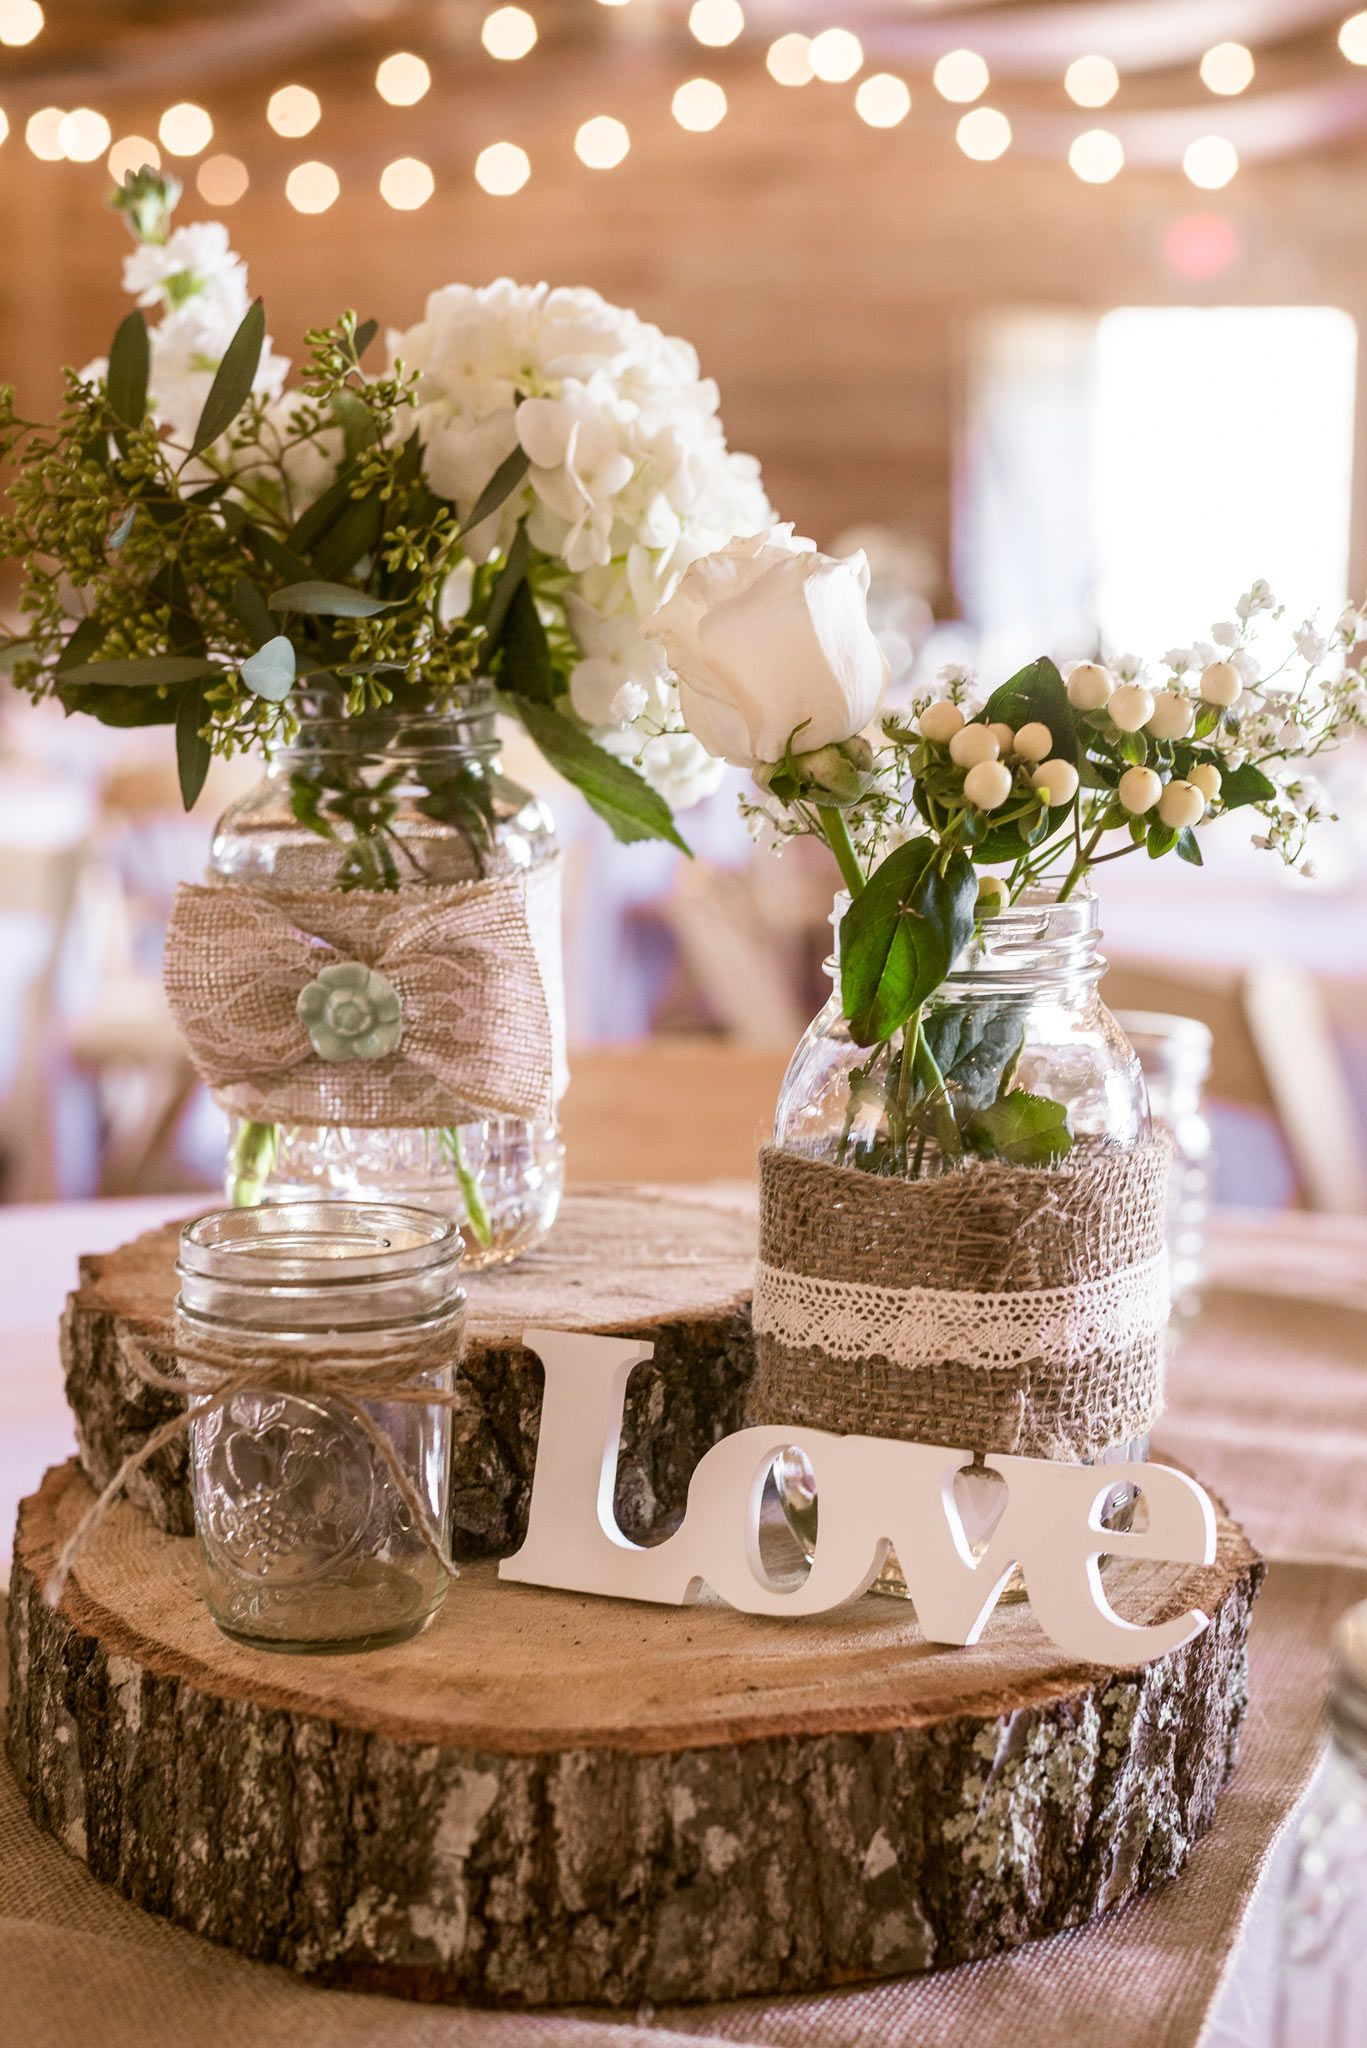 a relaxed garden soiree wedding in kiama wedding photography table centerpiece ideas bohemian chic wedding decorations | ... These Budget-Friendly Ideas from  Celebrity Weddings | BridalGuide